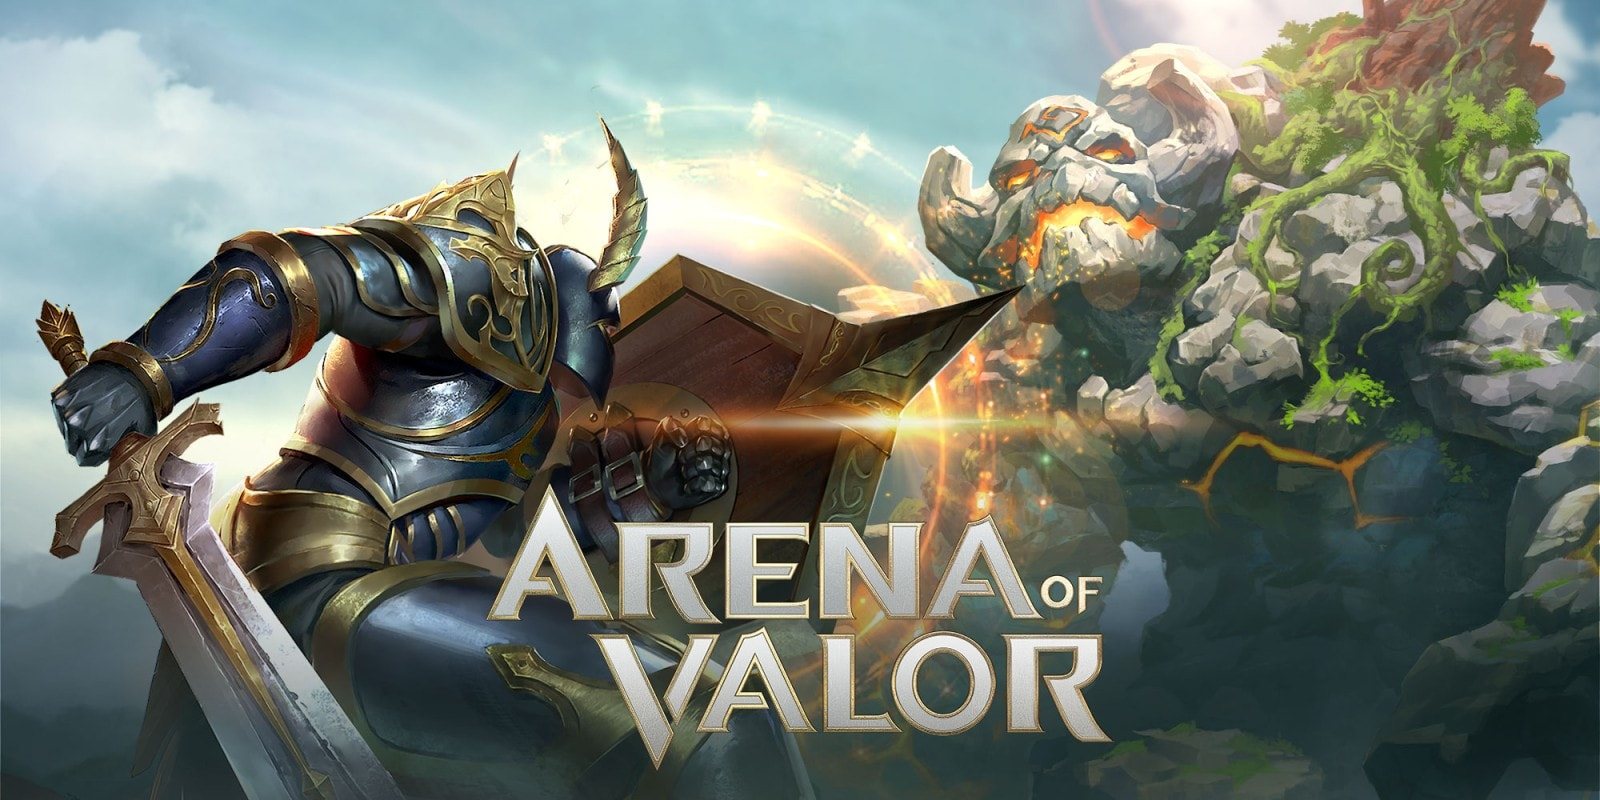 Arena of Valor is one of the Chinese variants of the famous MOBA game Wangzhe Rongyao.